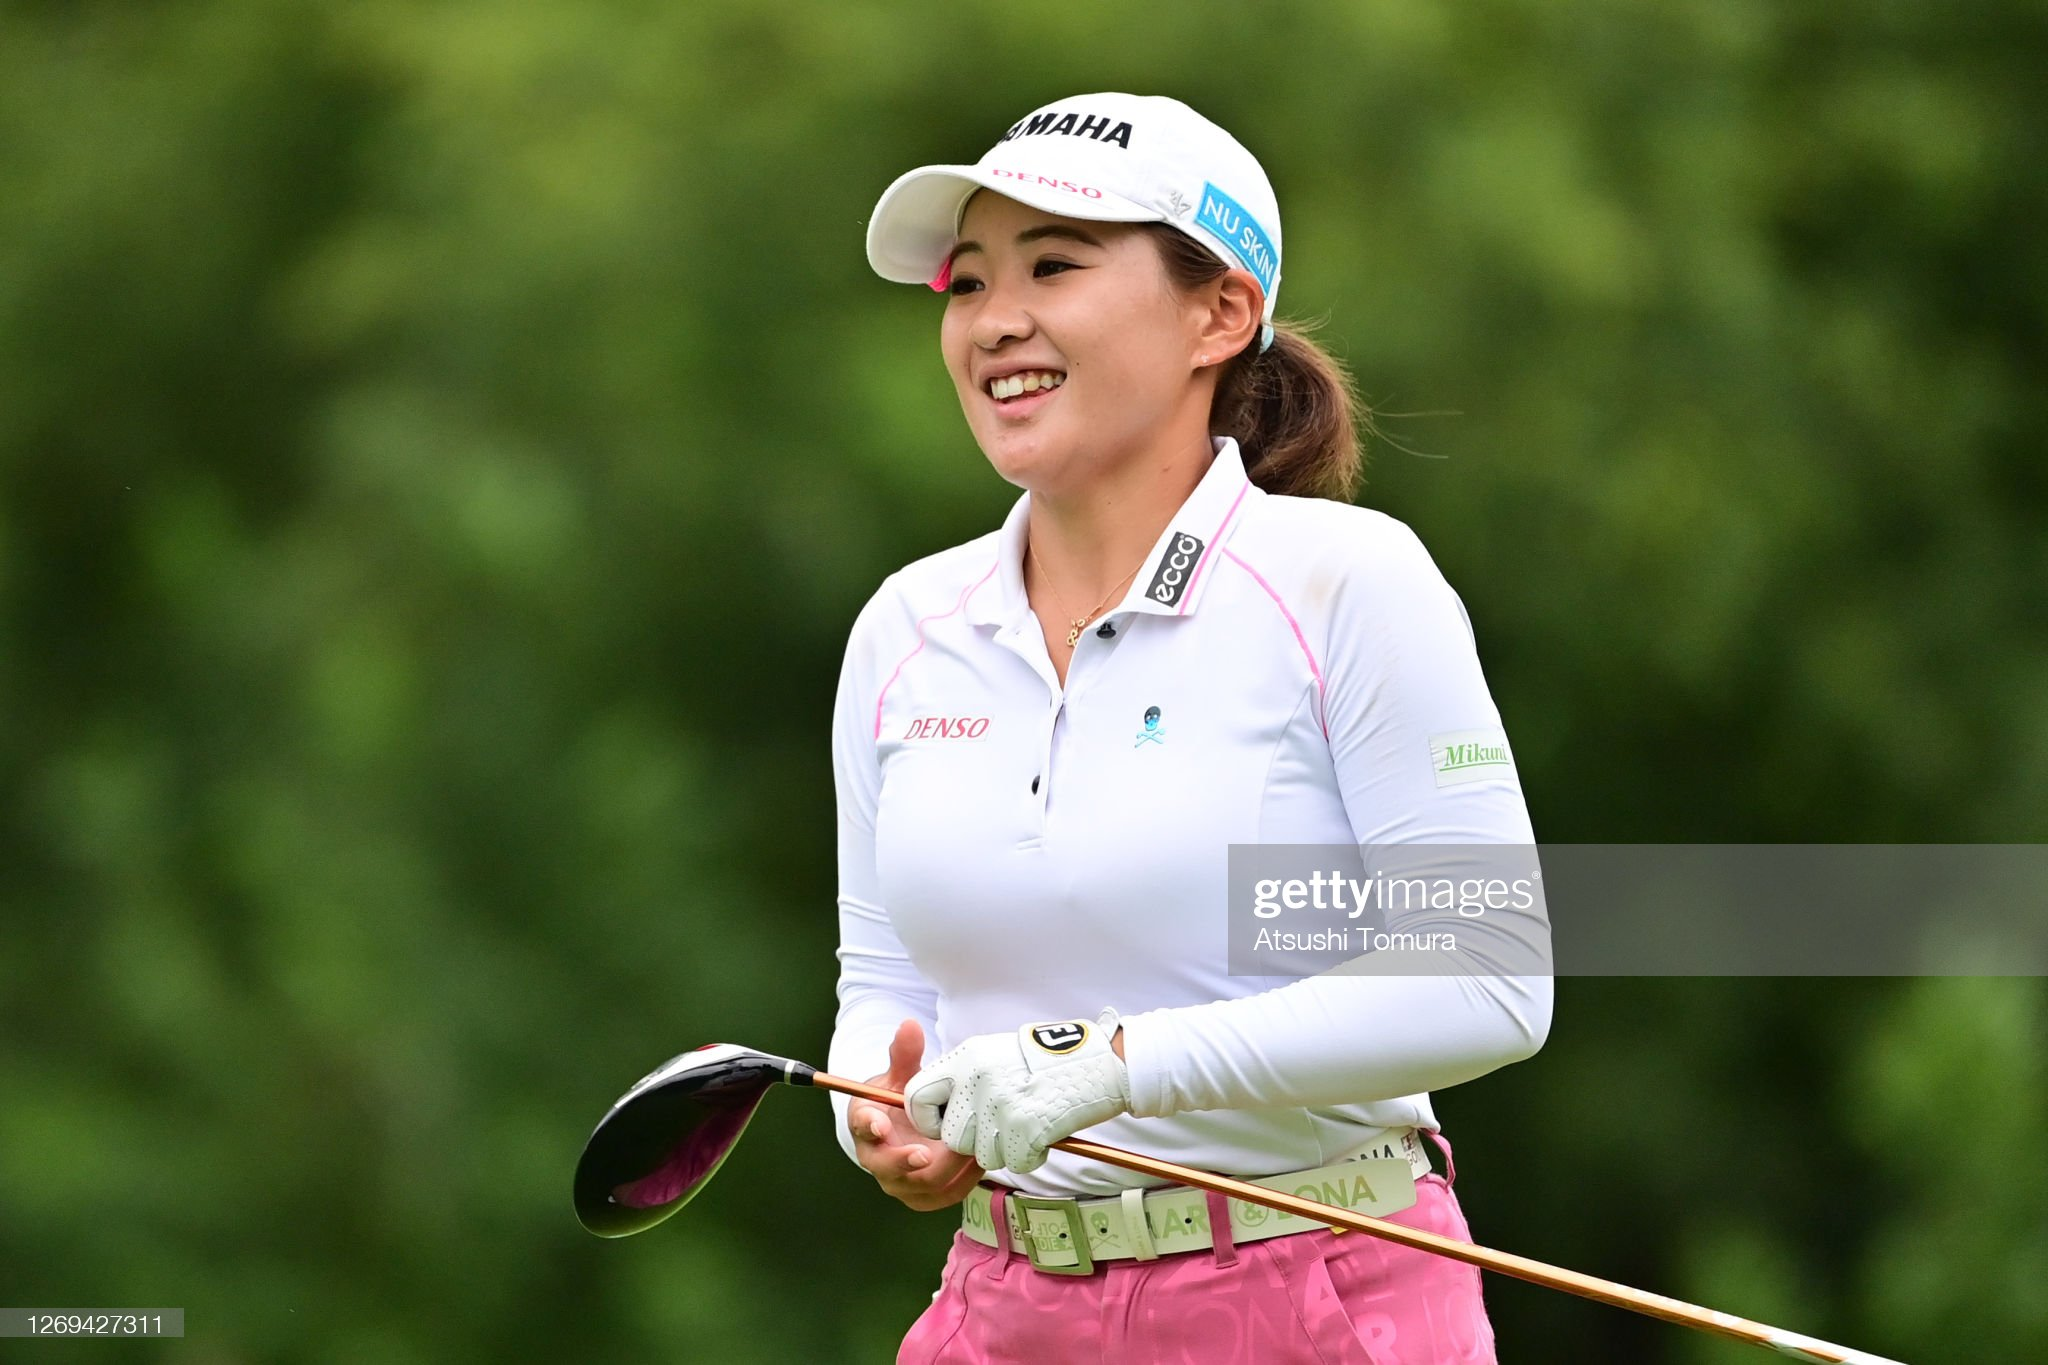 https://media.gettyimages.com/photos/kana-nagai-of-japan-is-seen-after-her-tee-shot-on-the-2nd-hole-during-picture-id1269427311?s=2048x2048